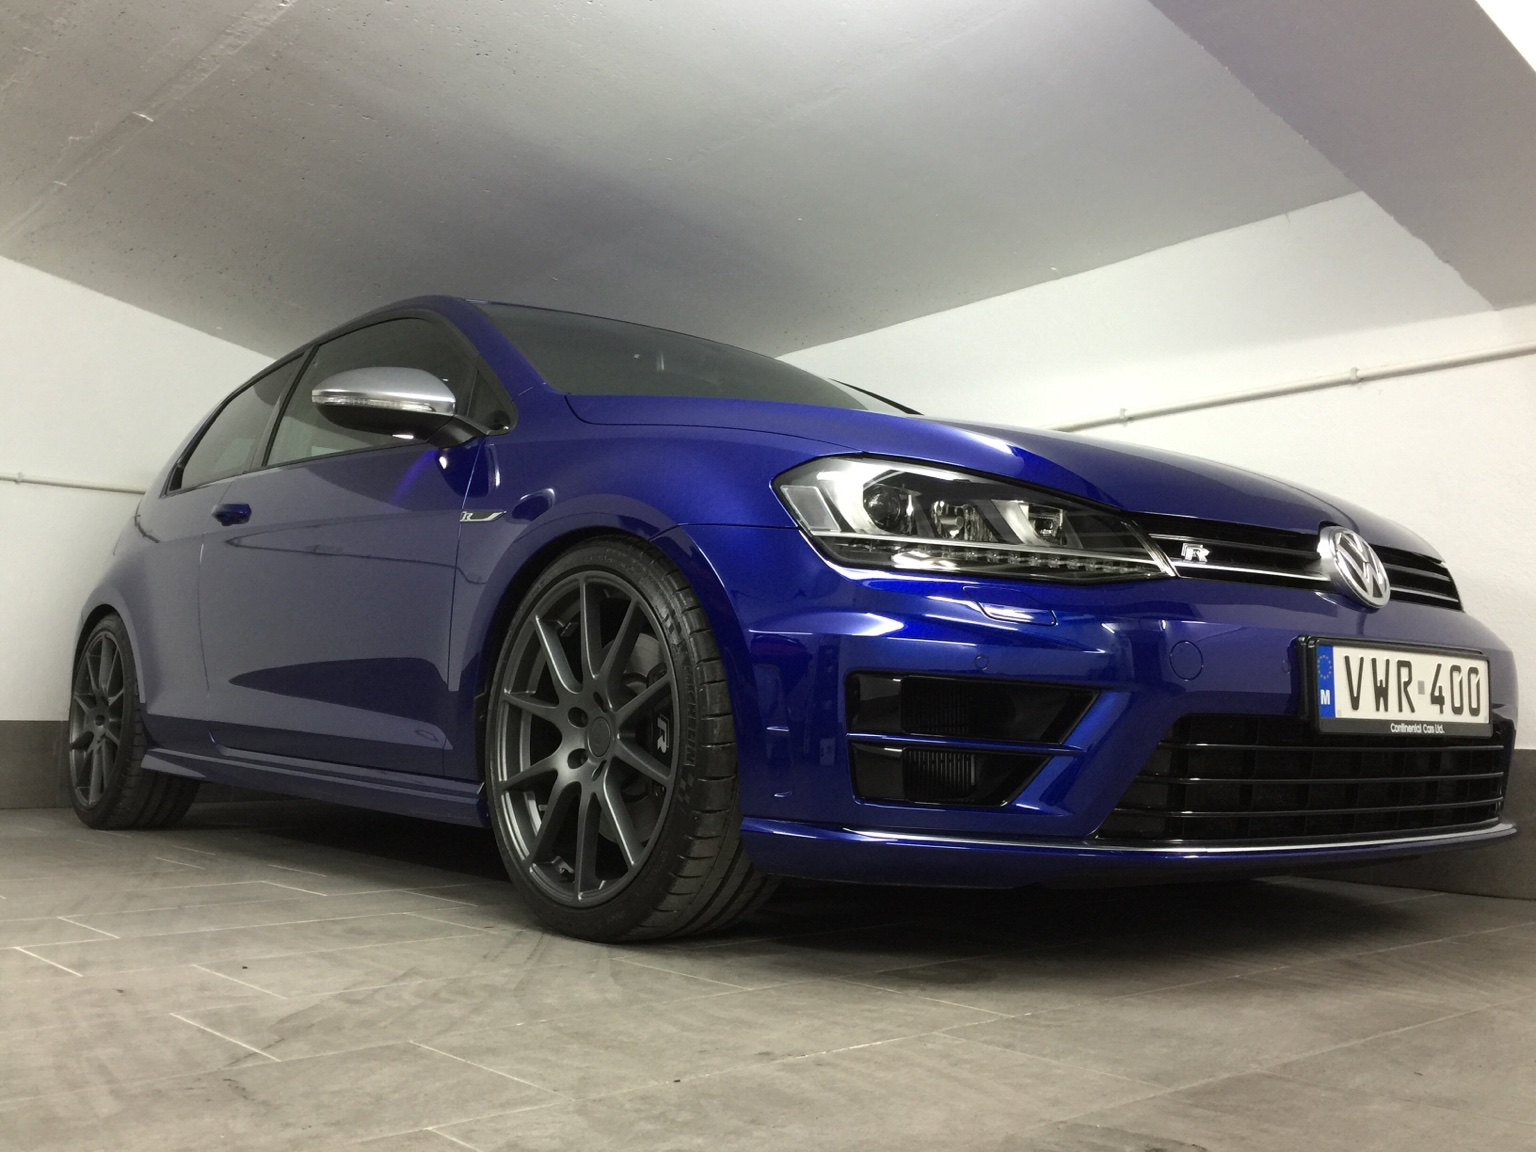 best aftermarket wheels for mk7 r page 3 modifying your golf r mk7 vw r owners club. Black Bedroom Furniture Sets. Home Design Ideas